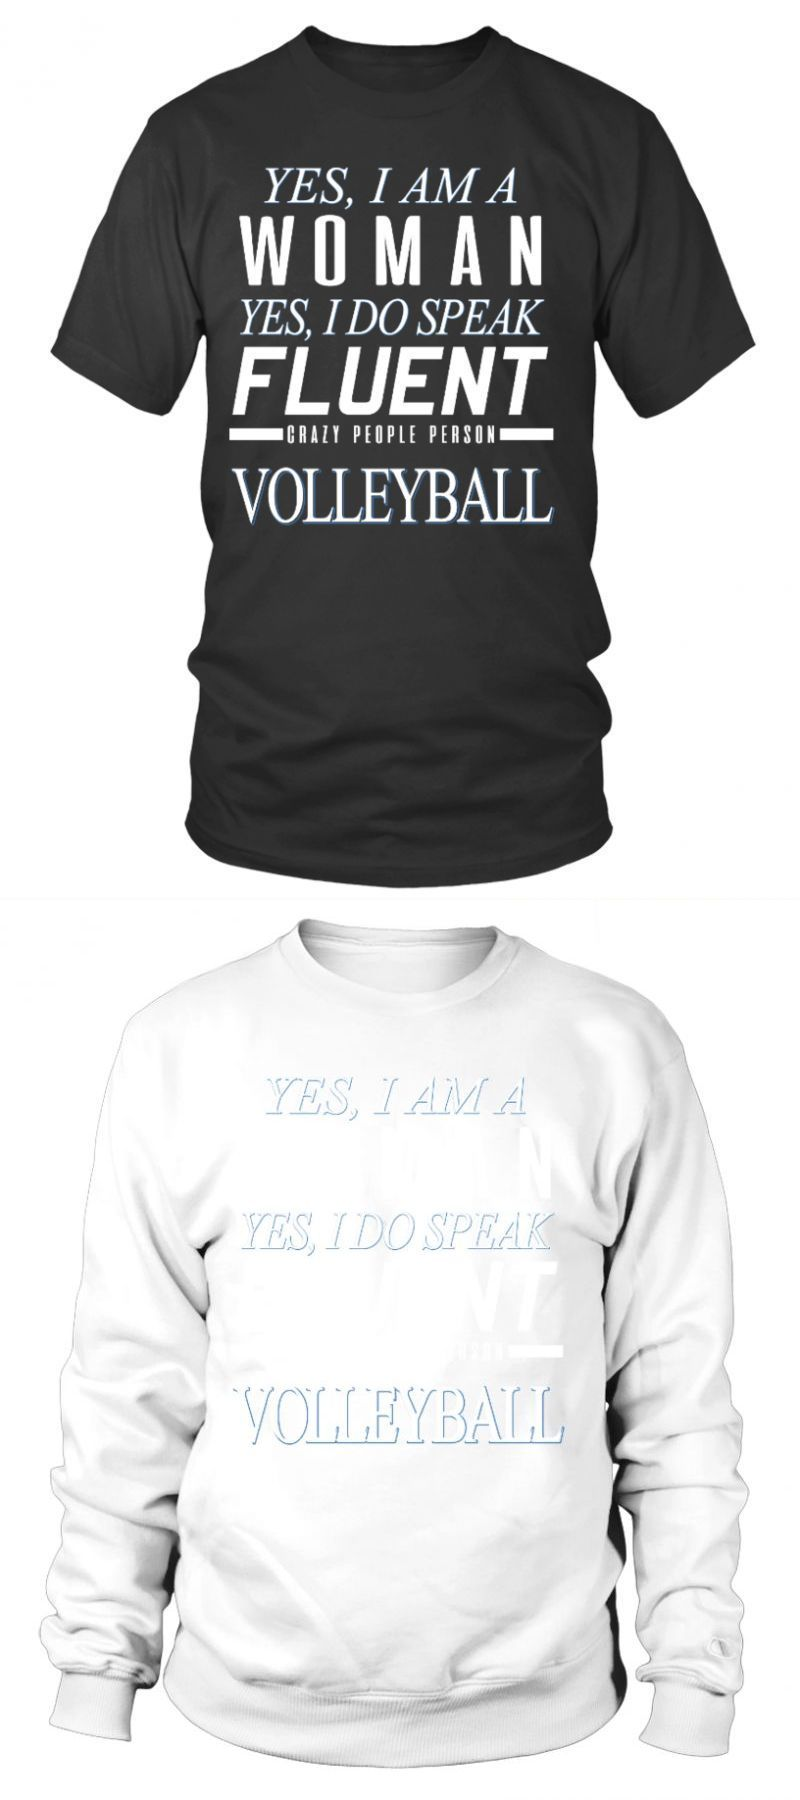 Volleyball T Shirt Decals Yes I Am A Woman Cvolleyball Homemade Volleyball T Shirt Ideas Volleyball Shirt Decals Yes Am Volleyball Tshirts Shirts T Shirt